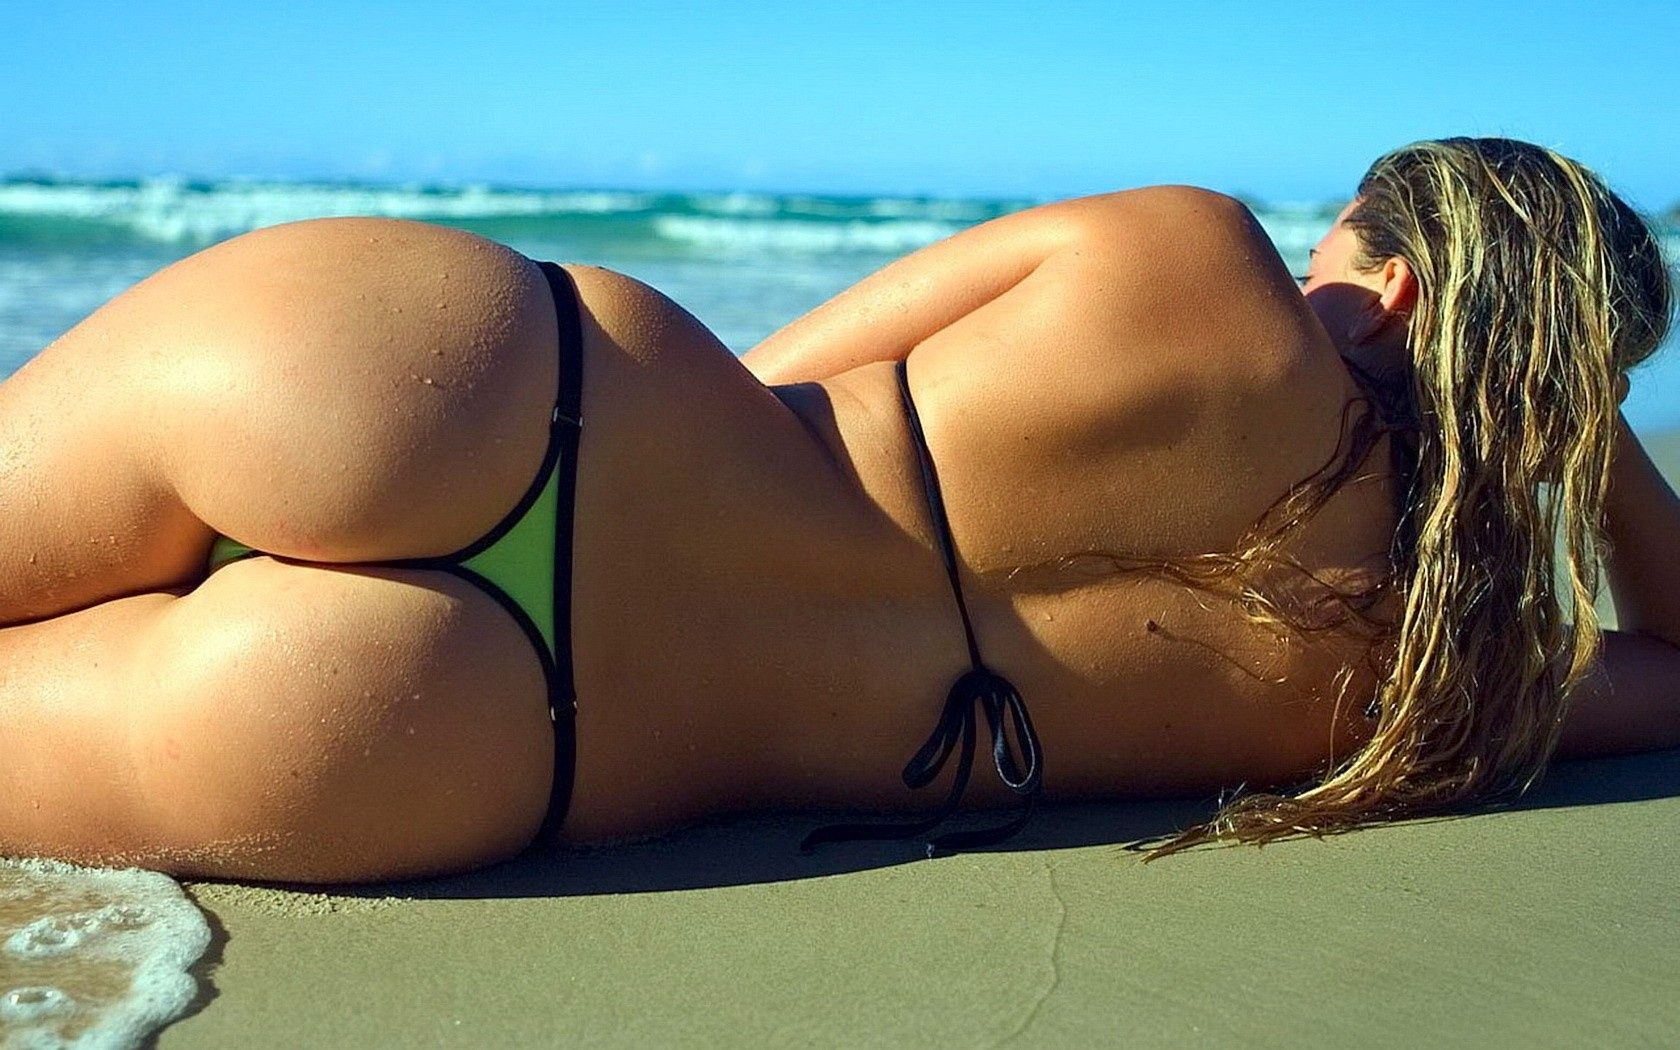 hot beach babes wallpapers - google search | wallpapers | pinterest